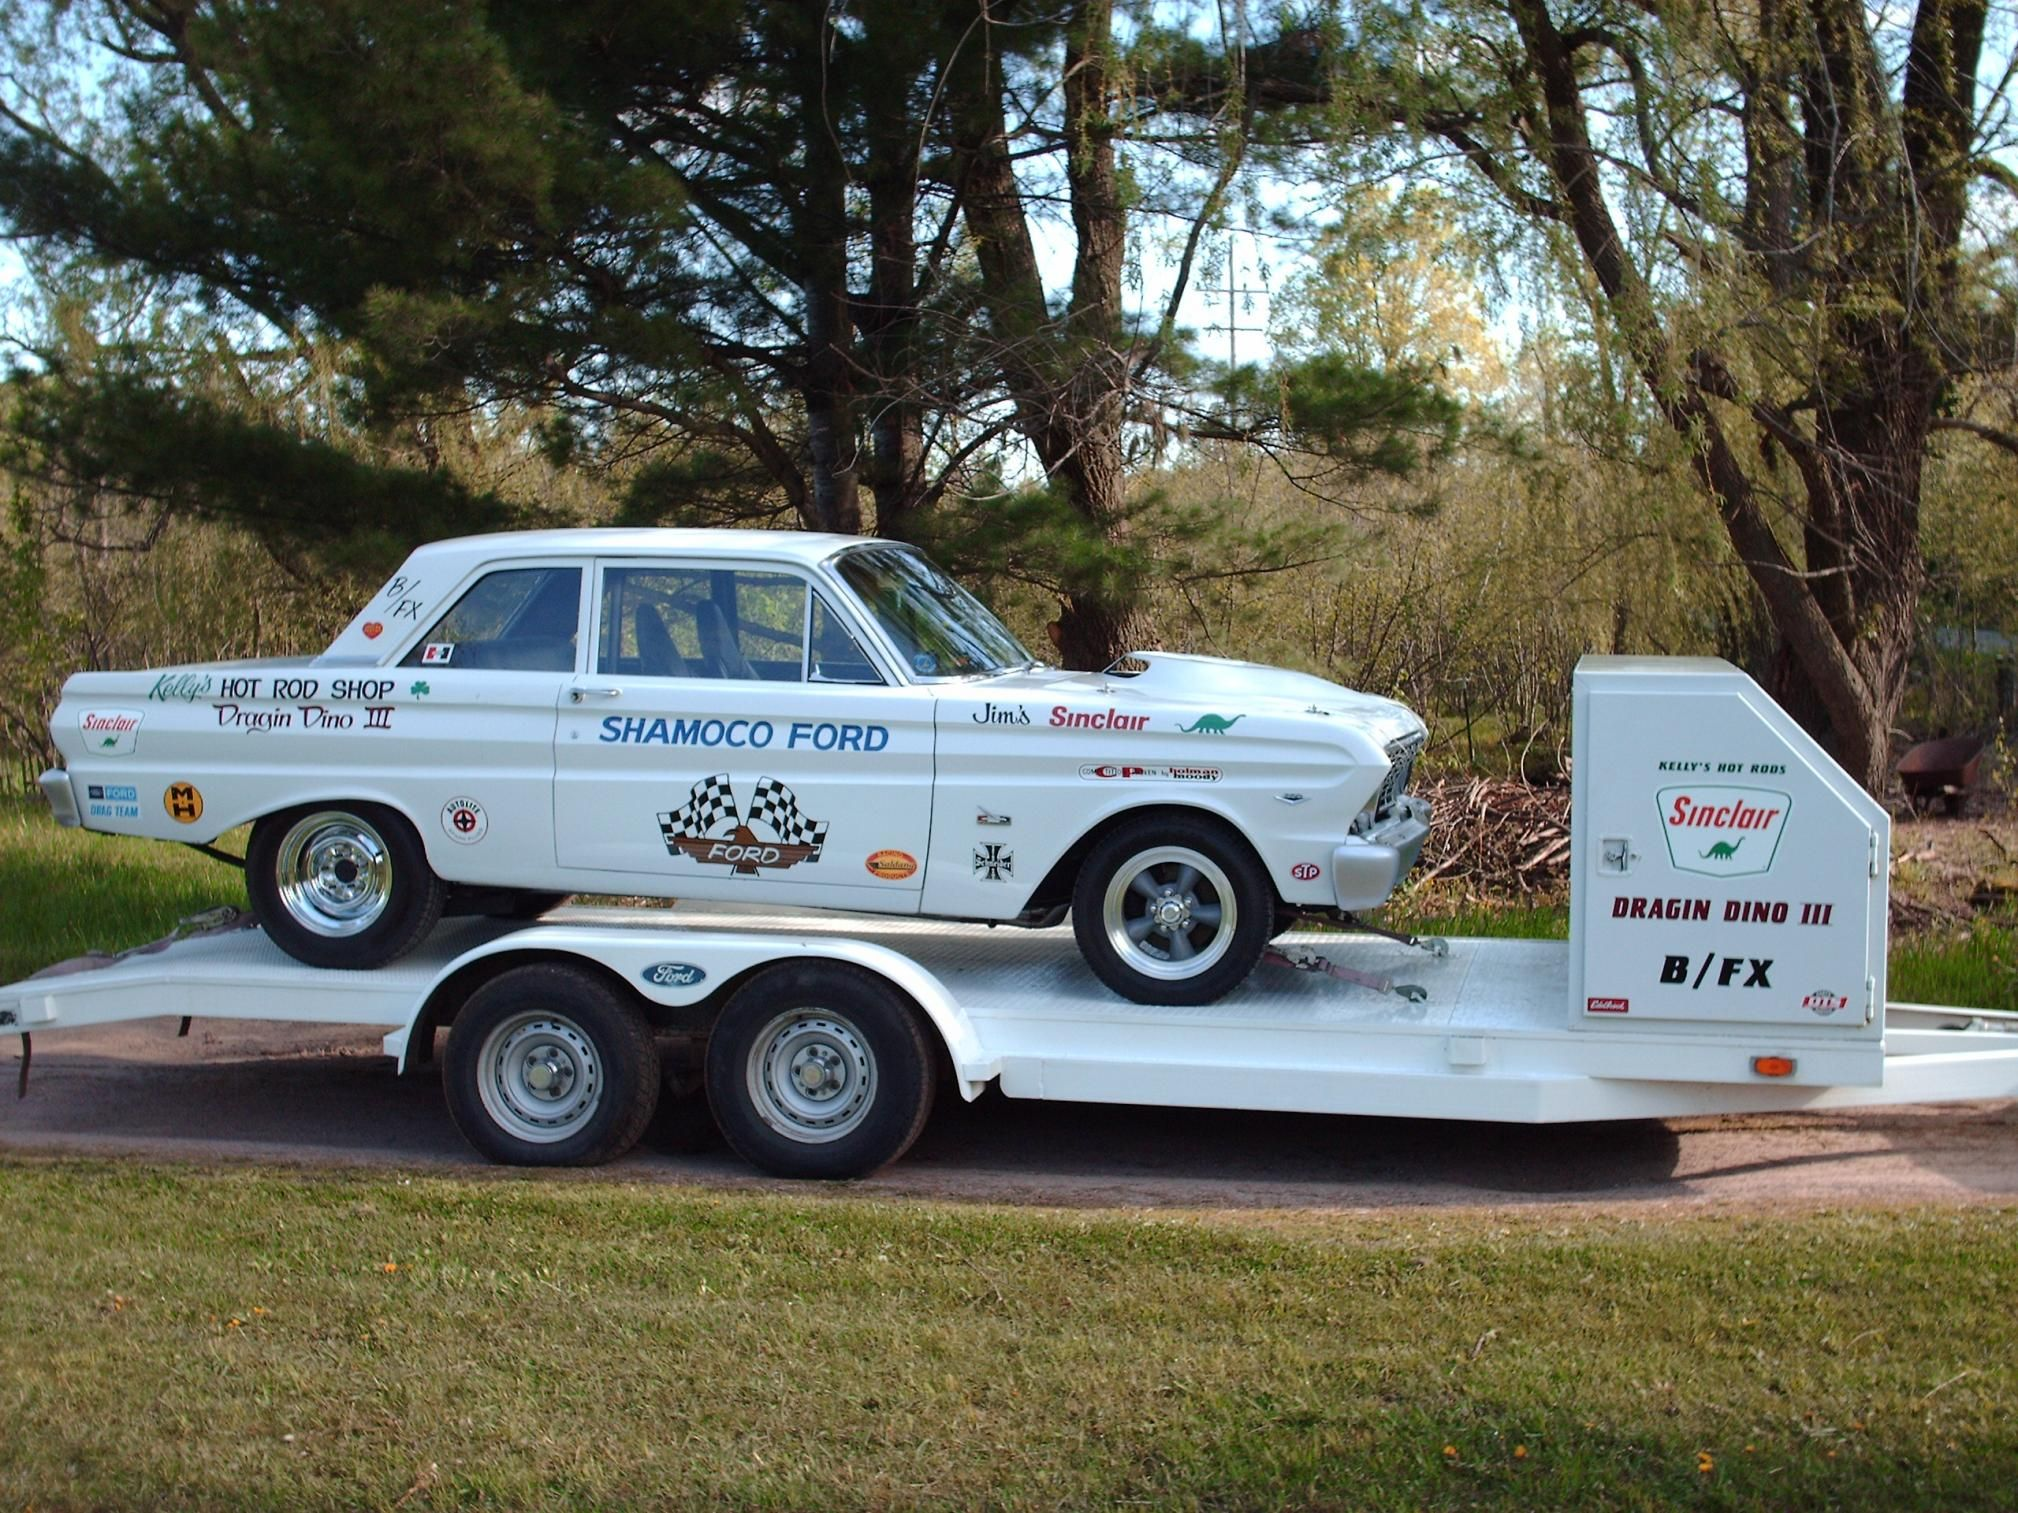 1969 cougar classic car restoration by doug jenkins garage - 1974 Ford Ohio George Pinto Turbocharged Drag Racing Car Trucks Motorcycles And Cars Pinterest Ohio Ford And Cars